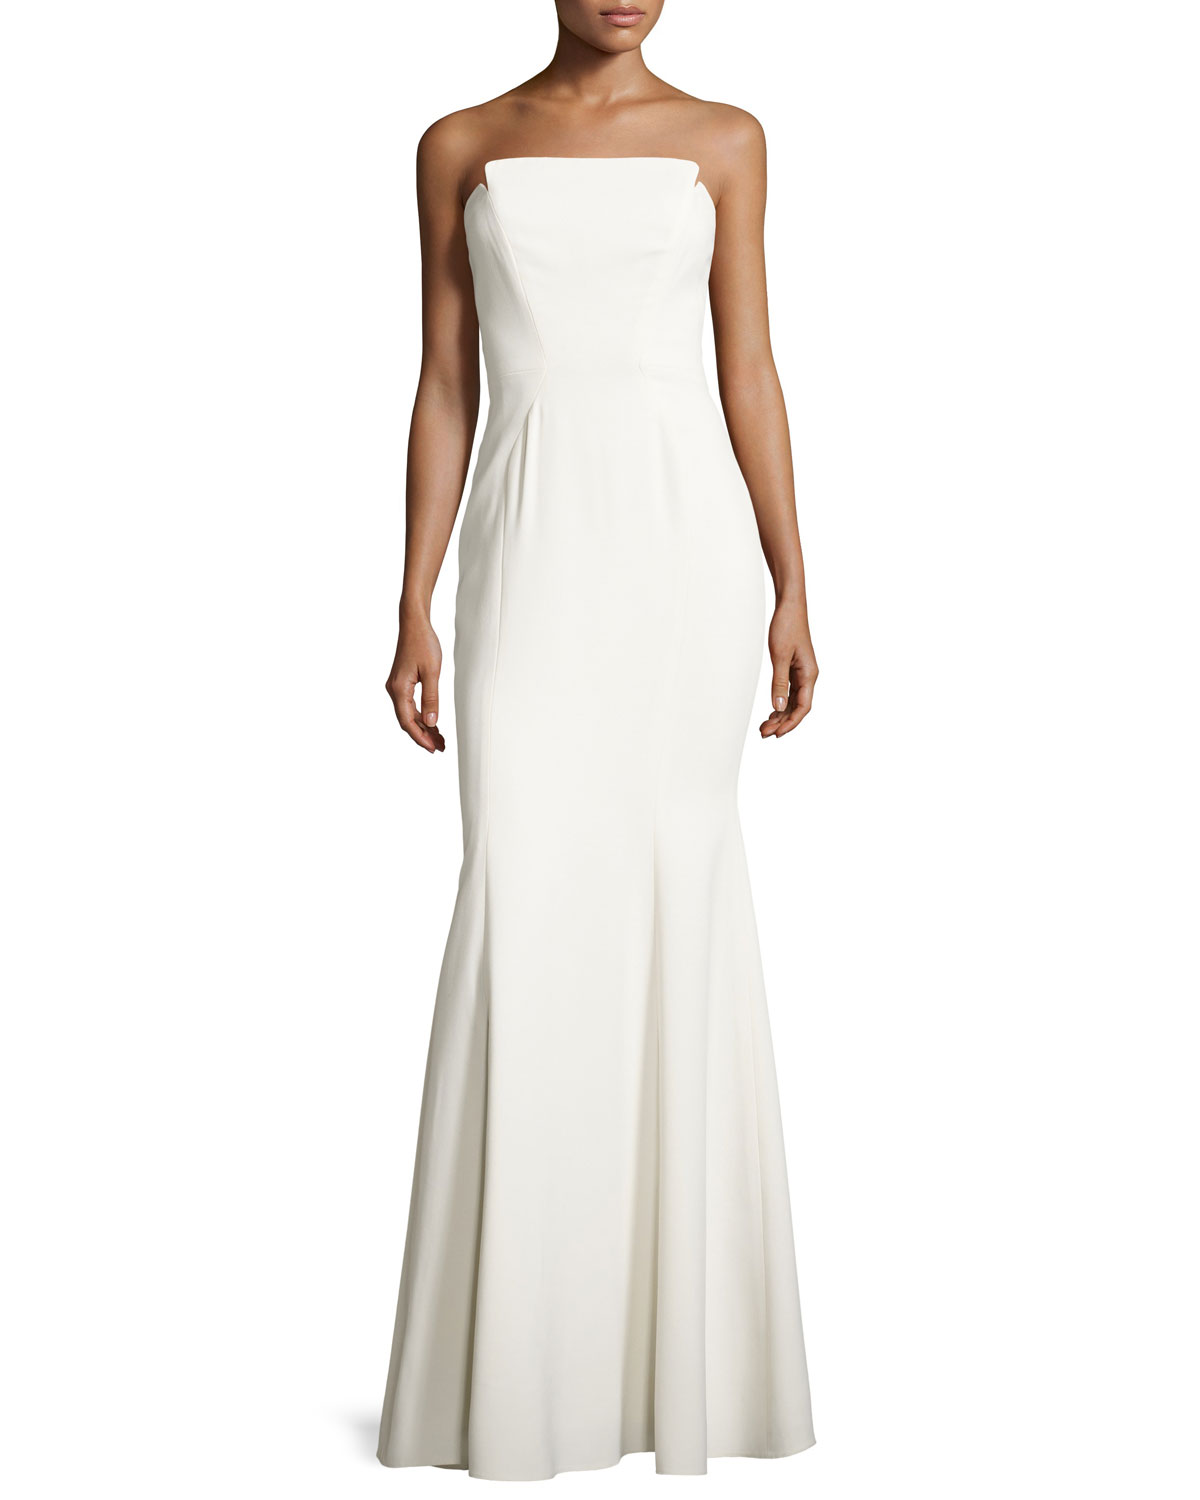 Jill Jill Stuart Strapless Structured Crepe Gown, Off White | Neiman ...